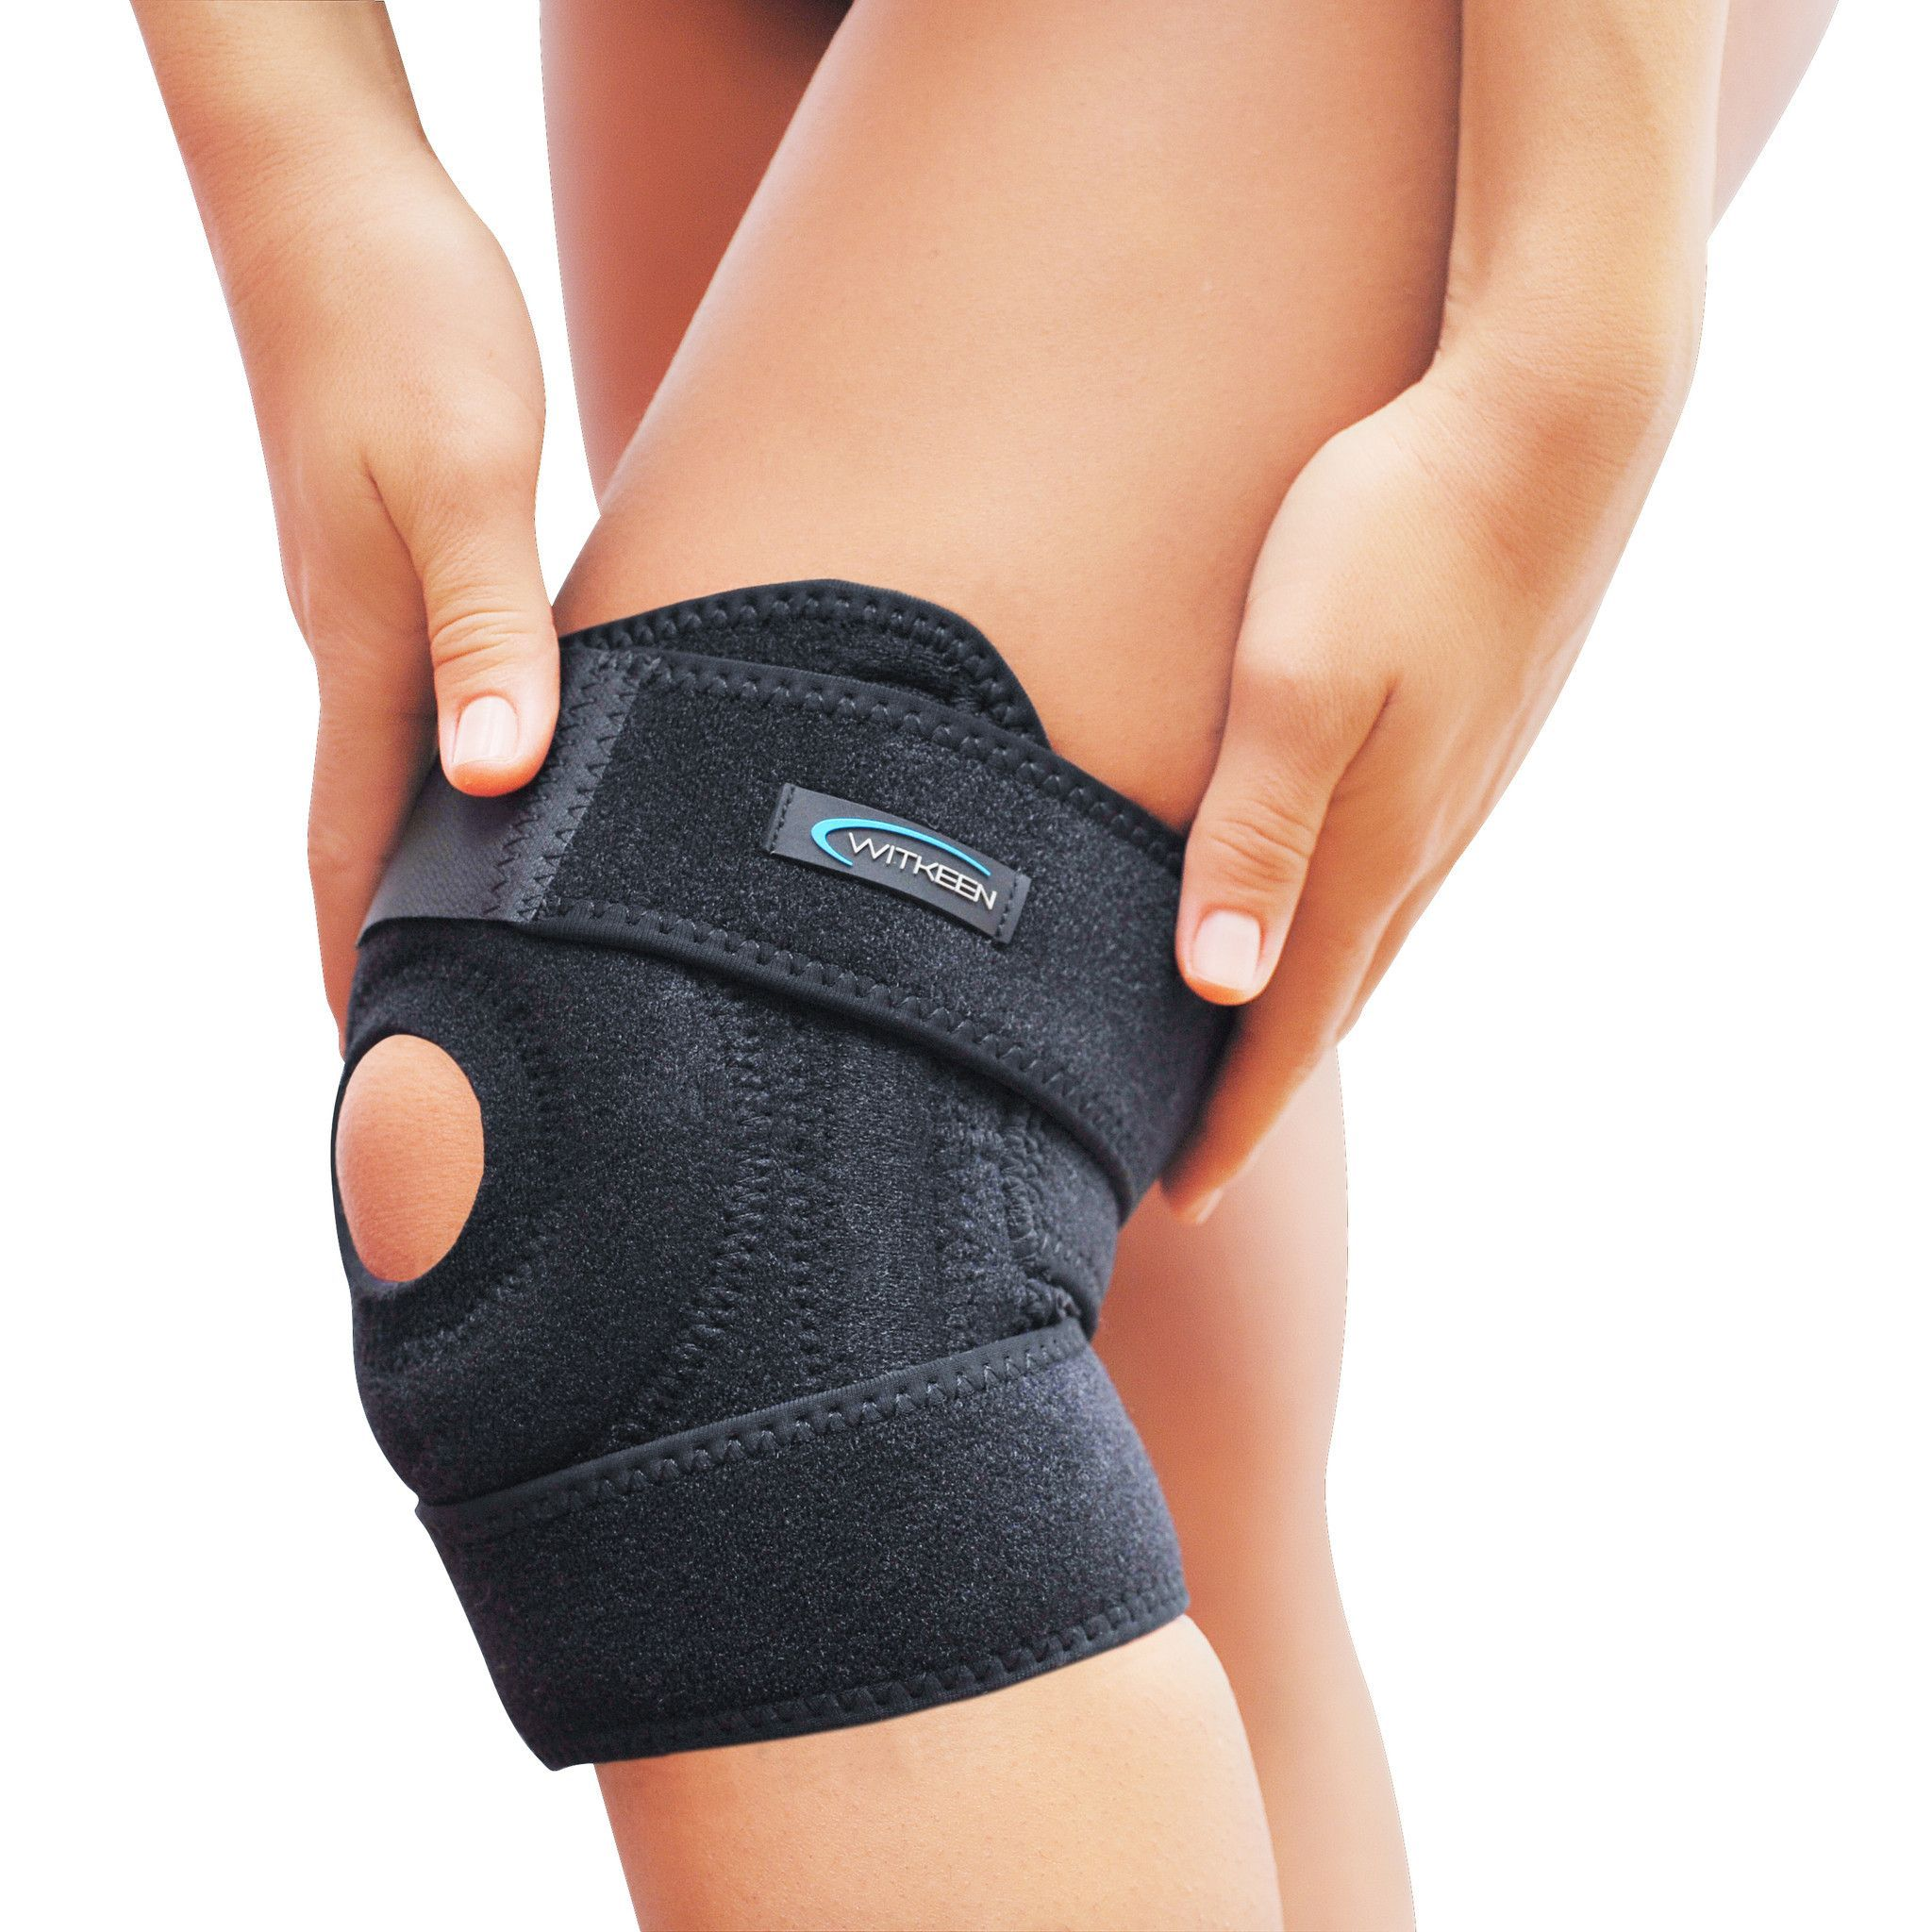 WITKEEN Knee Brace for Meniscus Tear, ACL, Arthritis Pain Relief ...